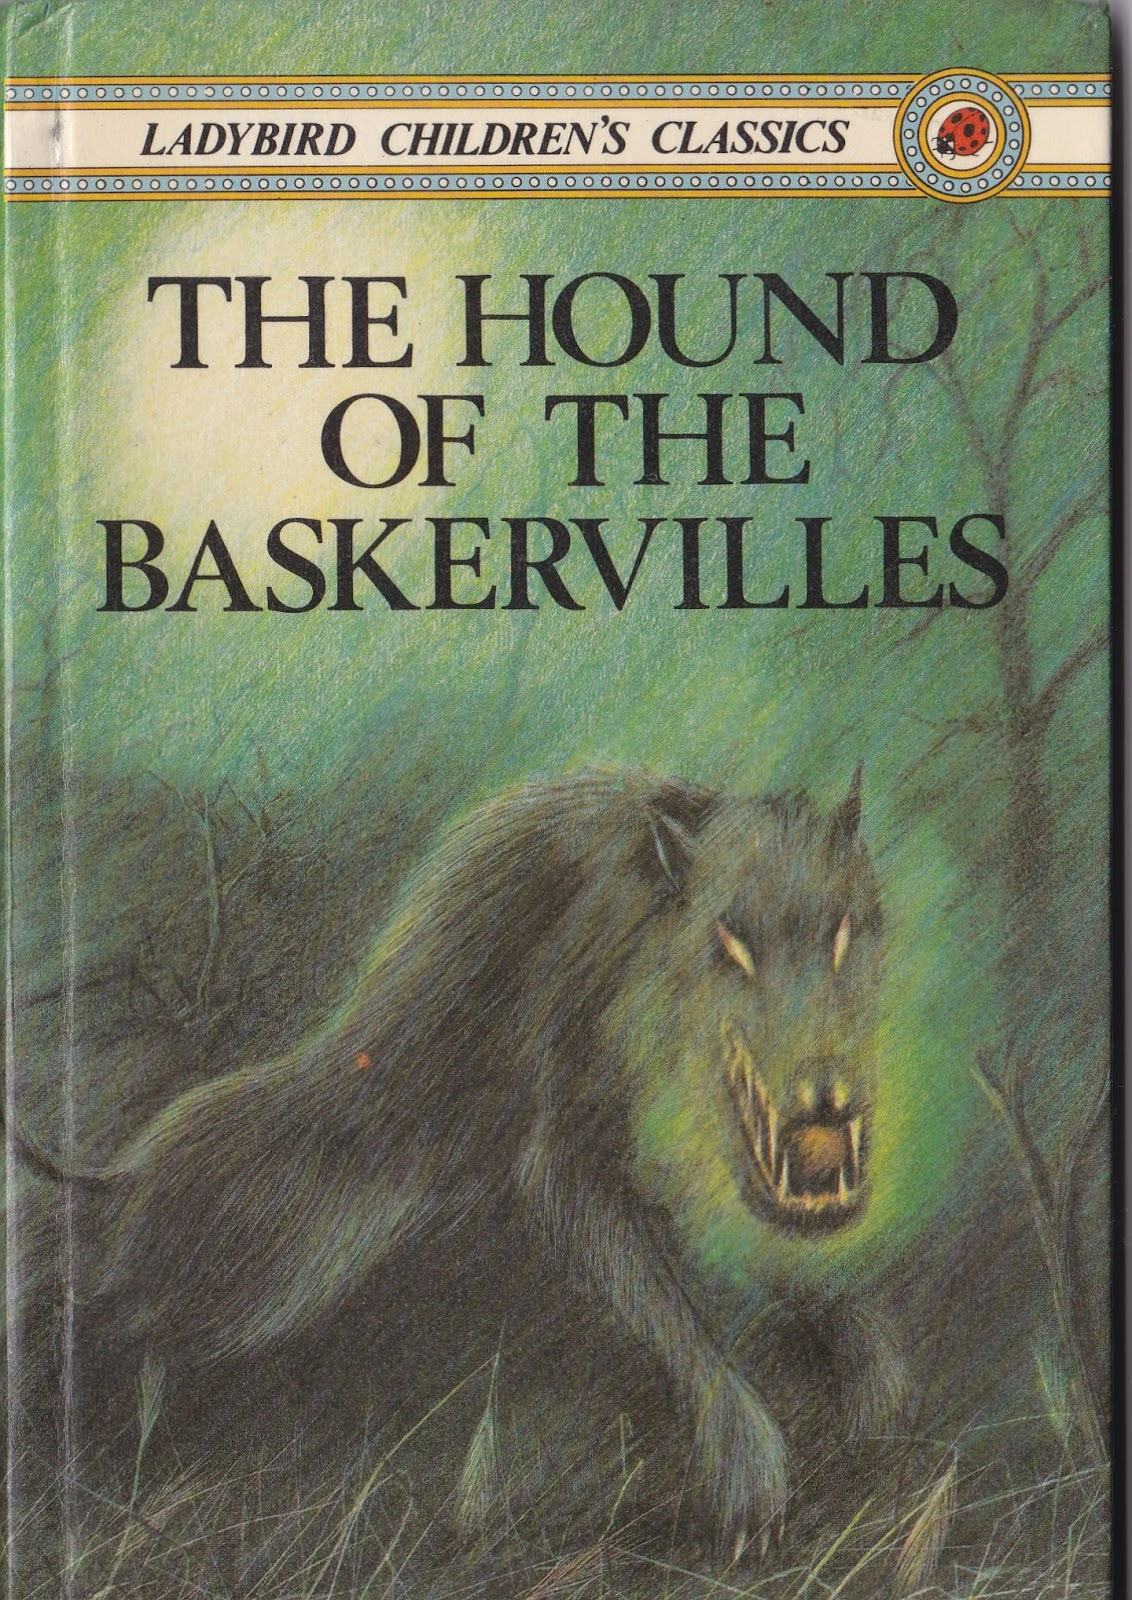 book the hound of the baskervilles The hound of the baskervilles by sir arthur conan doyle, 9780140437867,  available at book depository with free delivery worldwide.